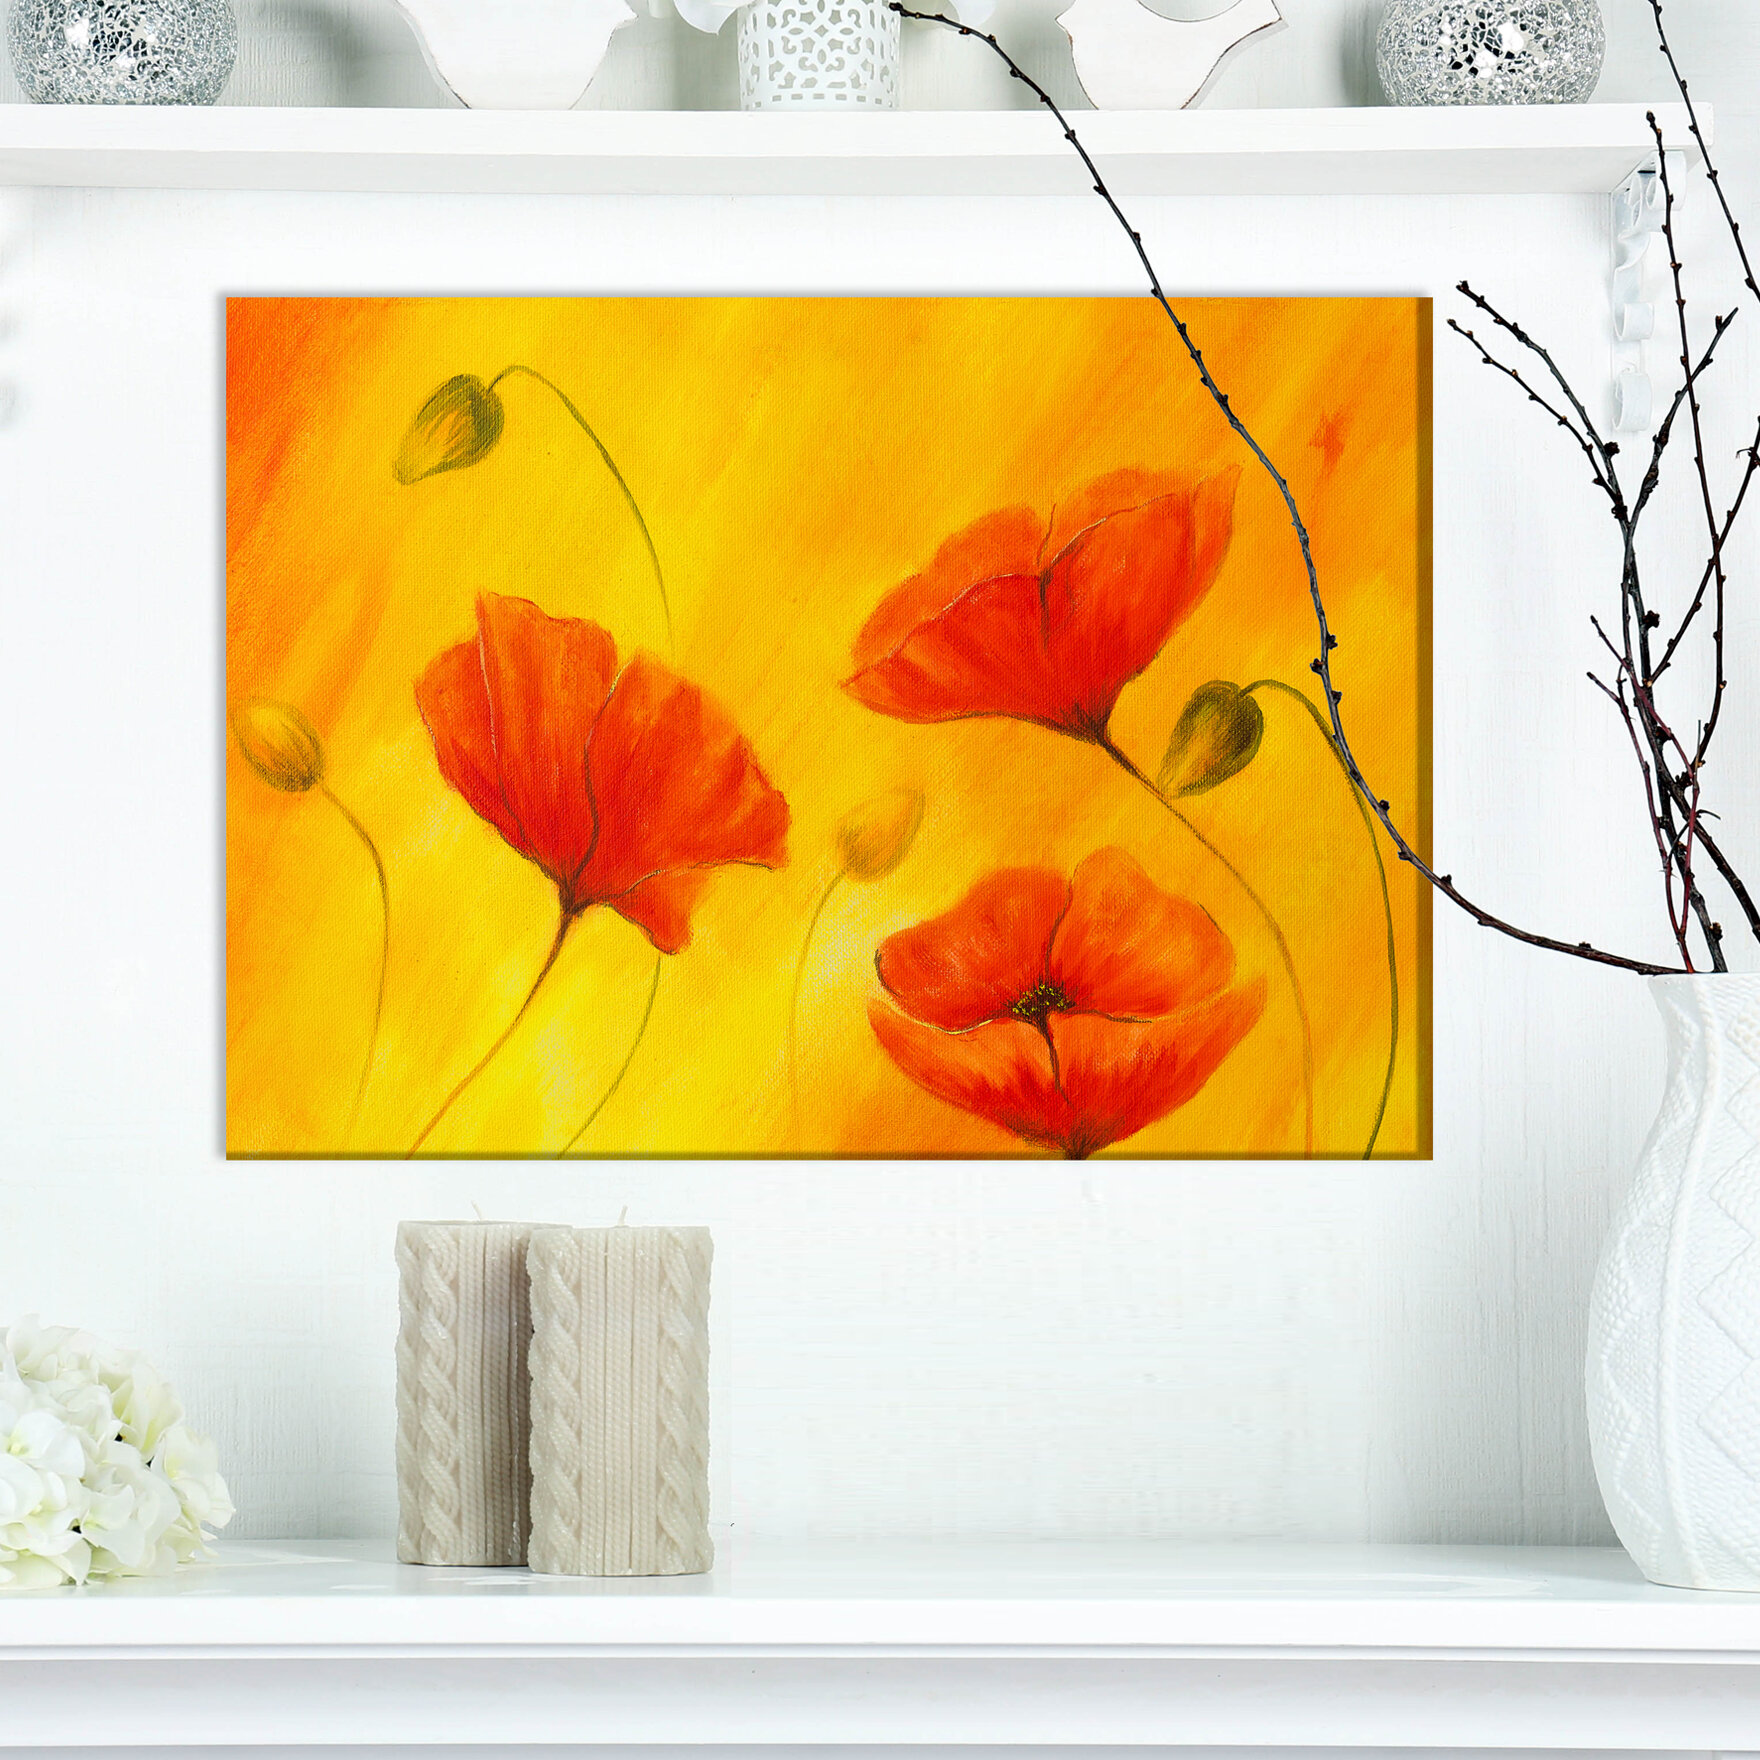 East urban home floral red poppy flower oil painting print on east urban home floral red poppy flower oil painting print on wrapped canvas wayfair mightylinksfo